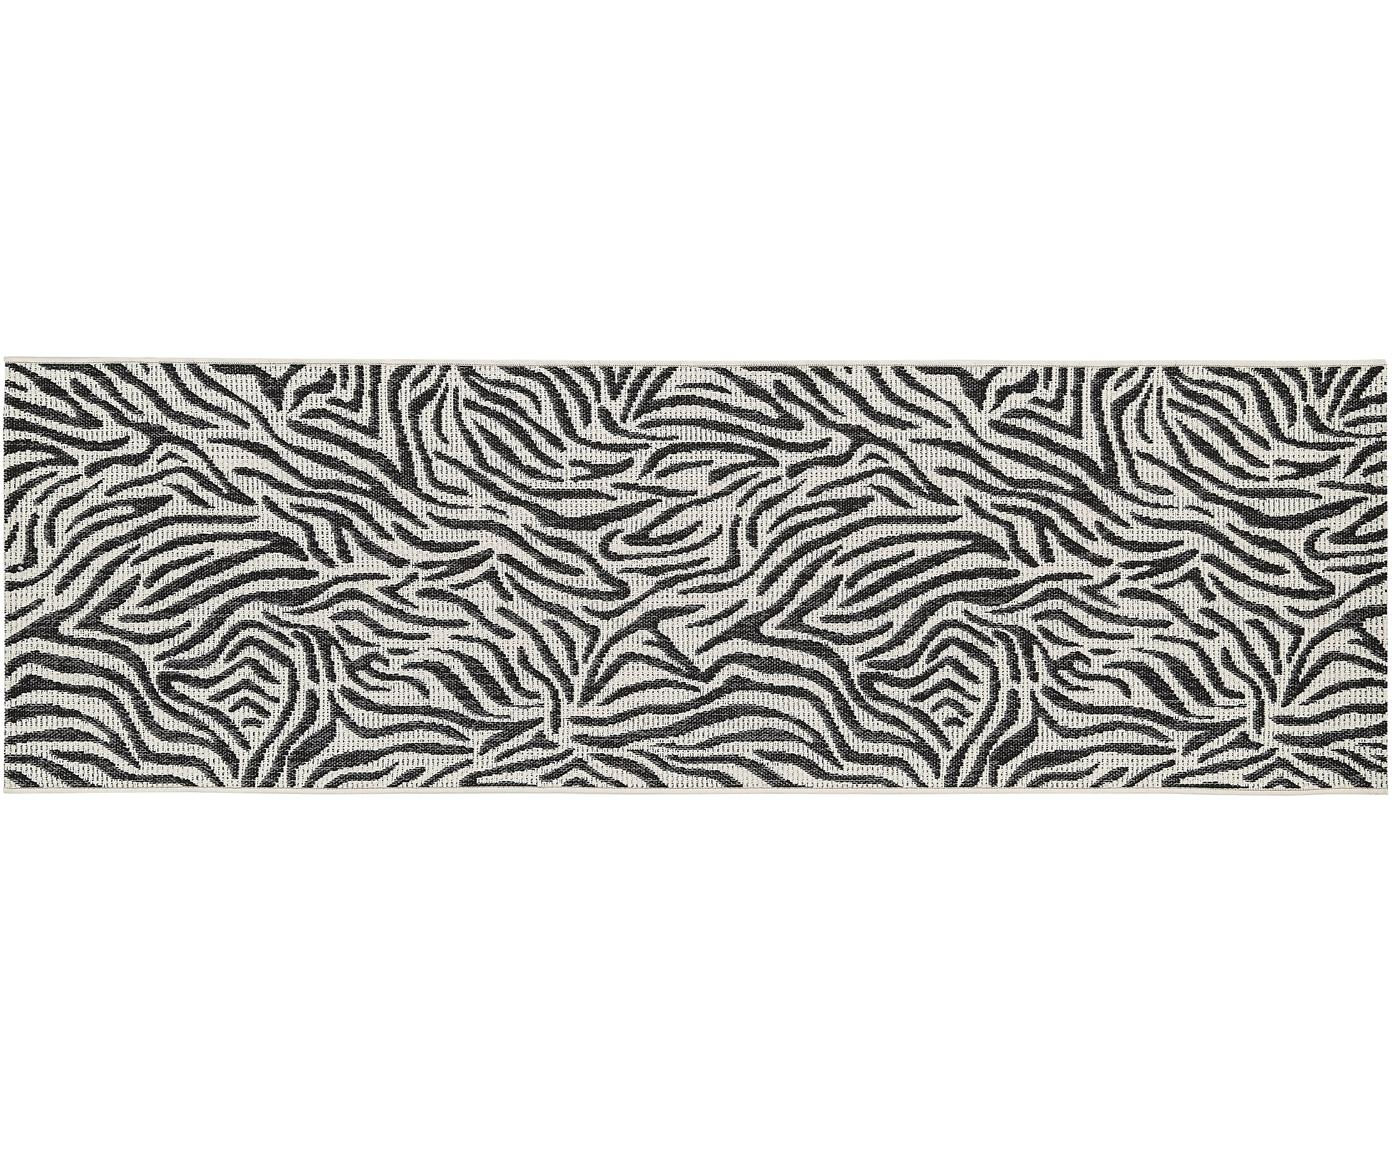 In- & Outdoor-Läufer Exotic mit Zebra Print, Flor: 100% Polypropylen, Cremeweiss, Schwarz, 80 x 250 cm